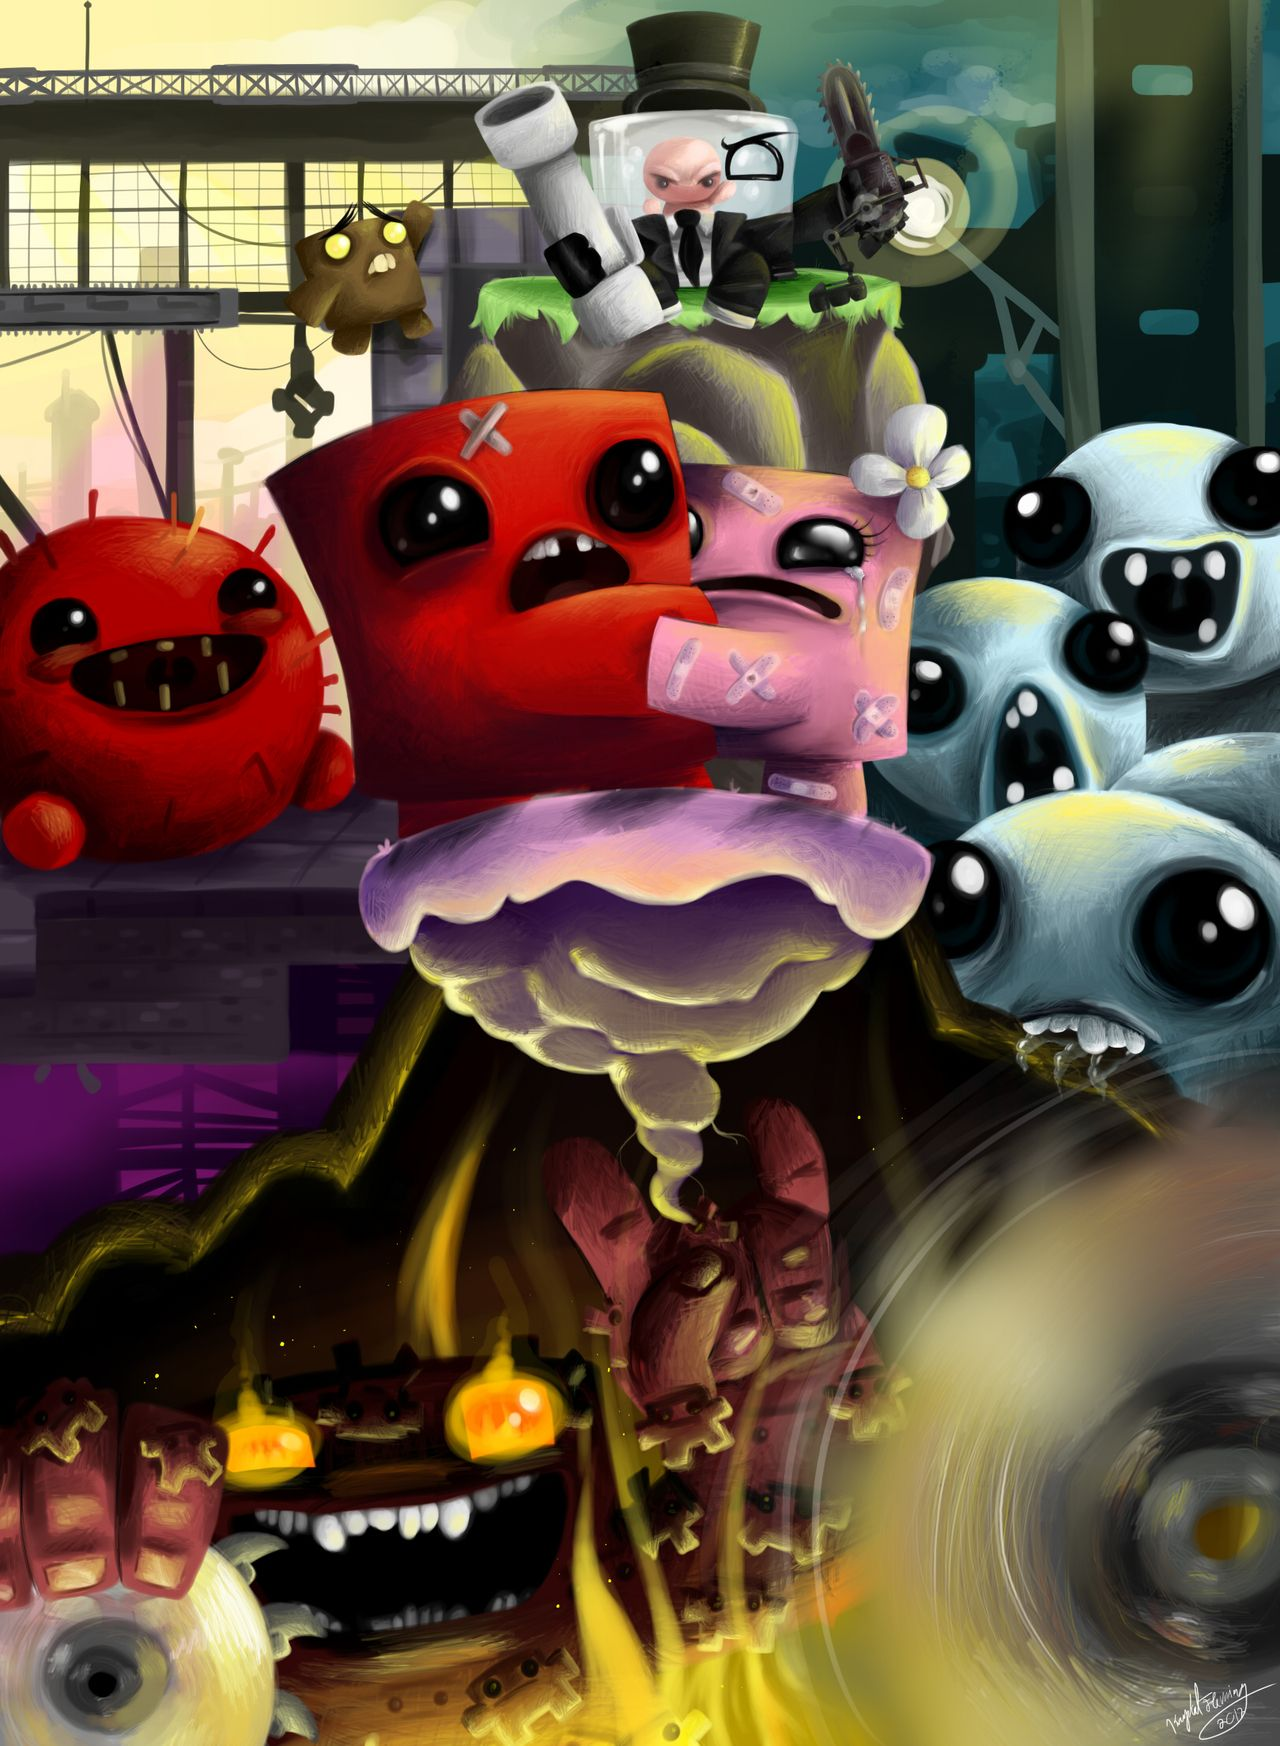 Super Meat Boy The Binding Of Isaac Boy Art Video Game Anime